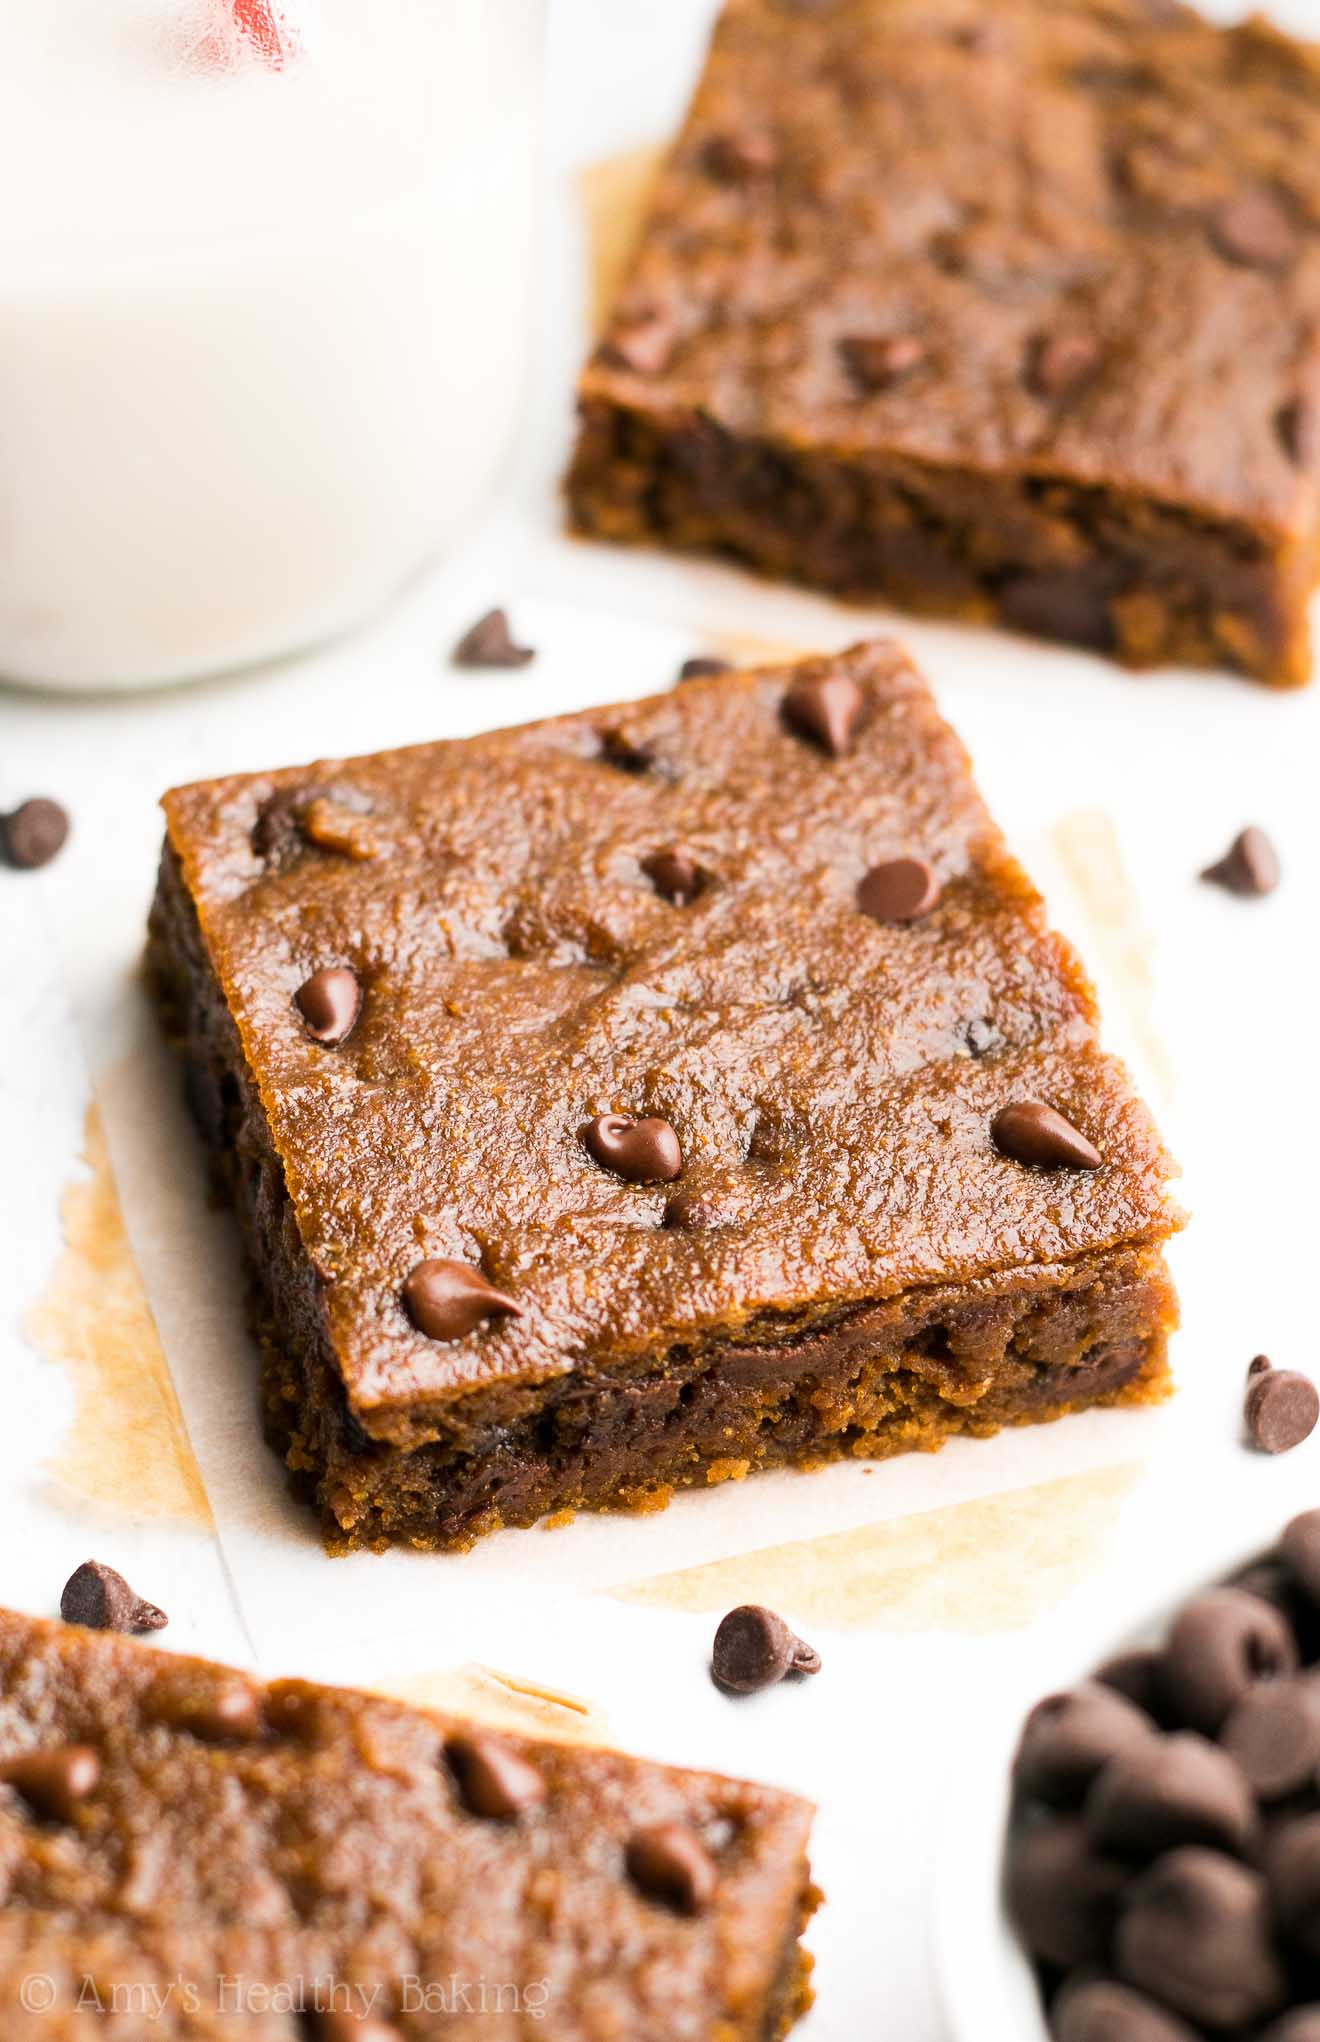 Skinny Slow Cooker Chocolate Chip Cookie Bars -- so rich & just 108 calories! These are absolutely amazing & don't taste healthy at all!